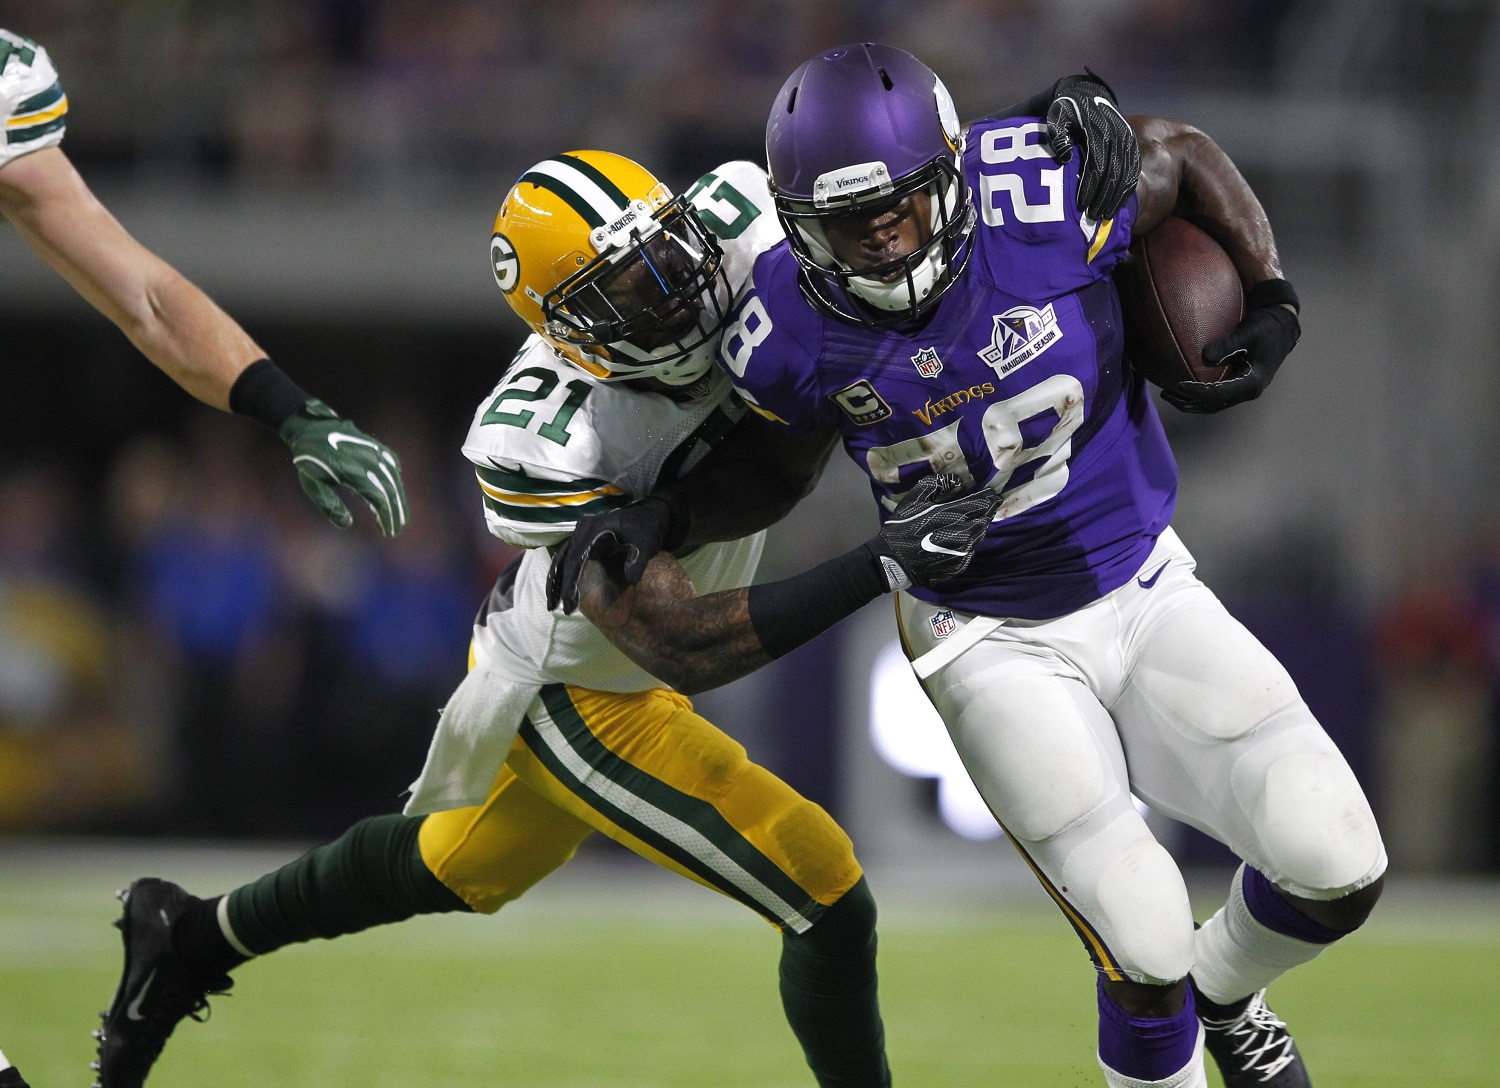 Minnesota Vikings running back Adrian Peterson (28) tries to break a tackle by Green Bay Packers free safety Ha Ha Clinton-Dix, left, during the first half of an NFL football game Sunday, Sept. 18, 2016, in Minneapolis. (AP Photo/Andy Clayton-King)